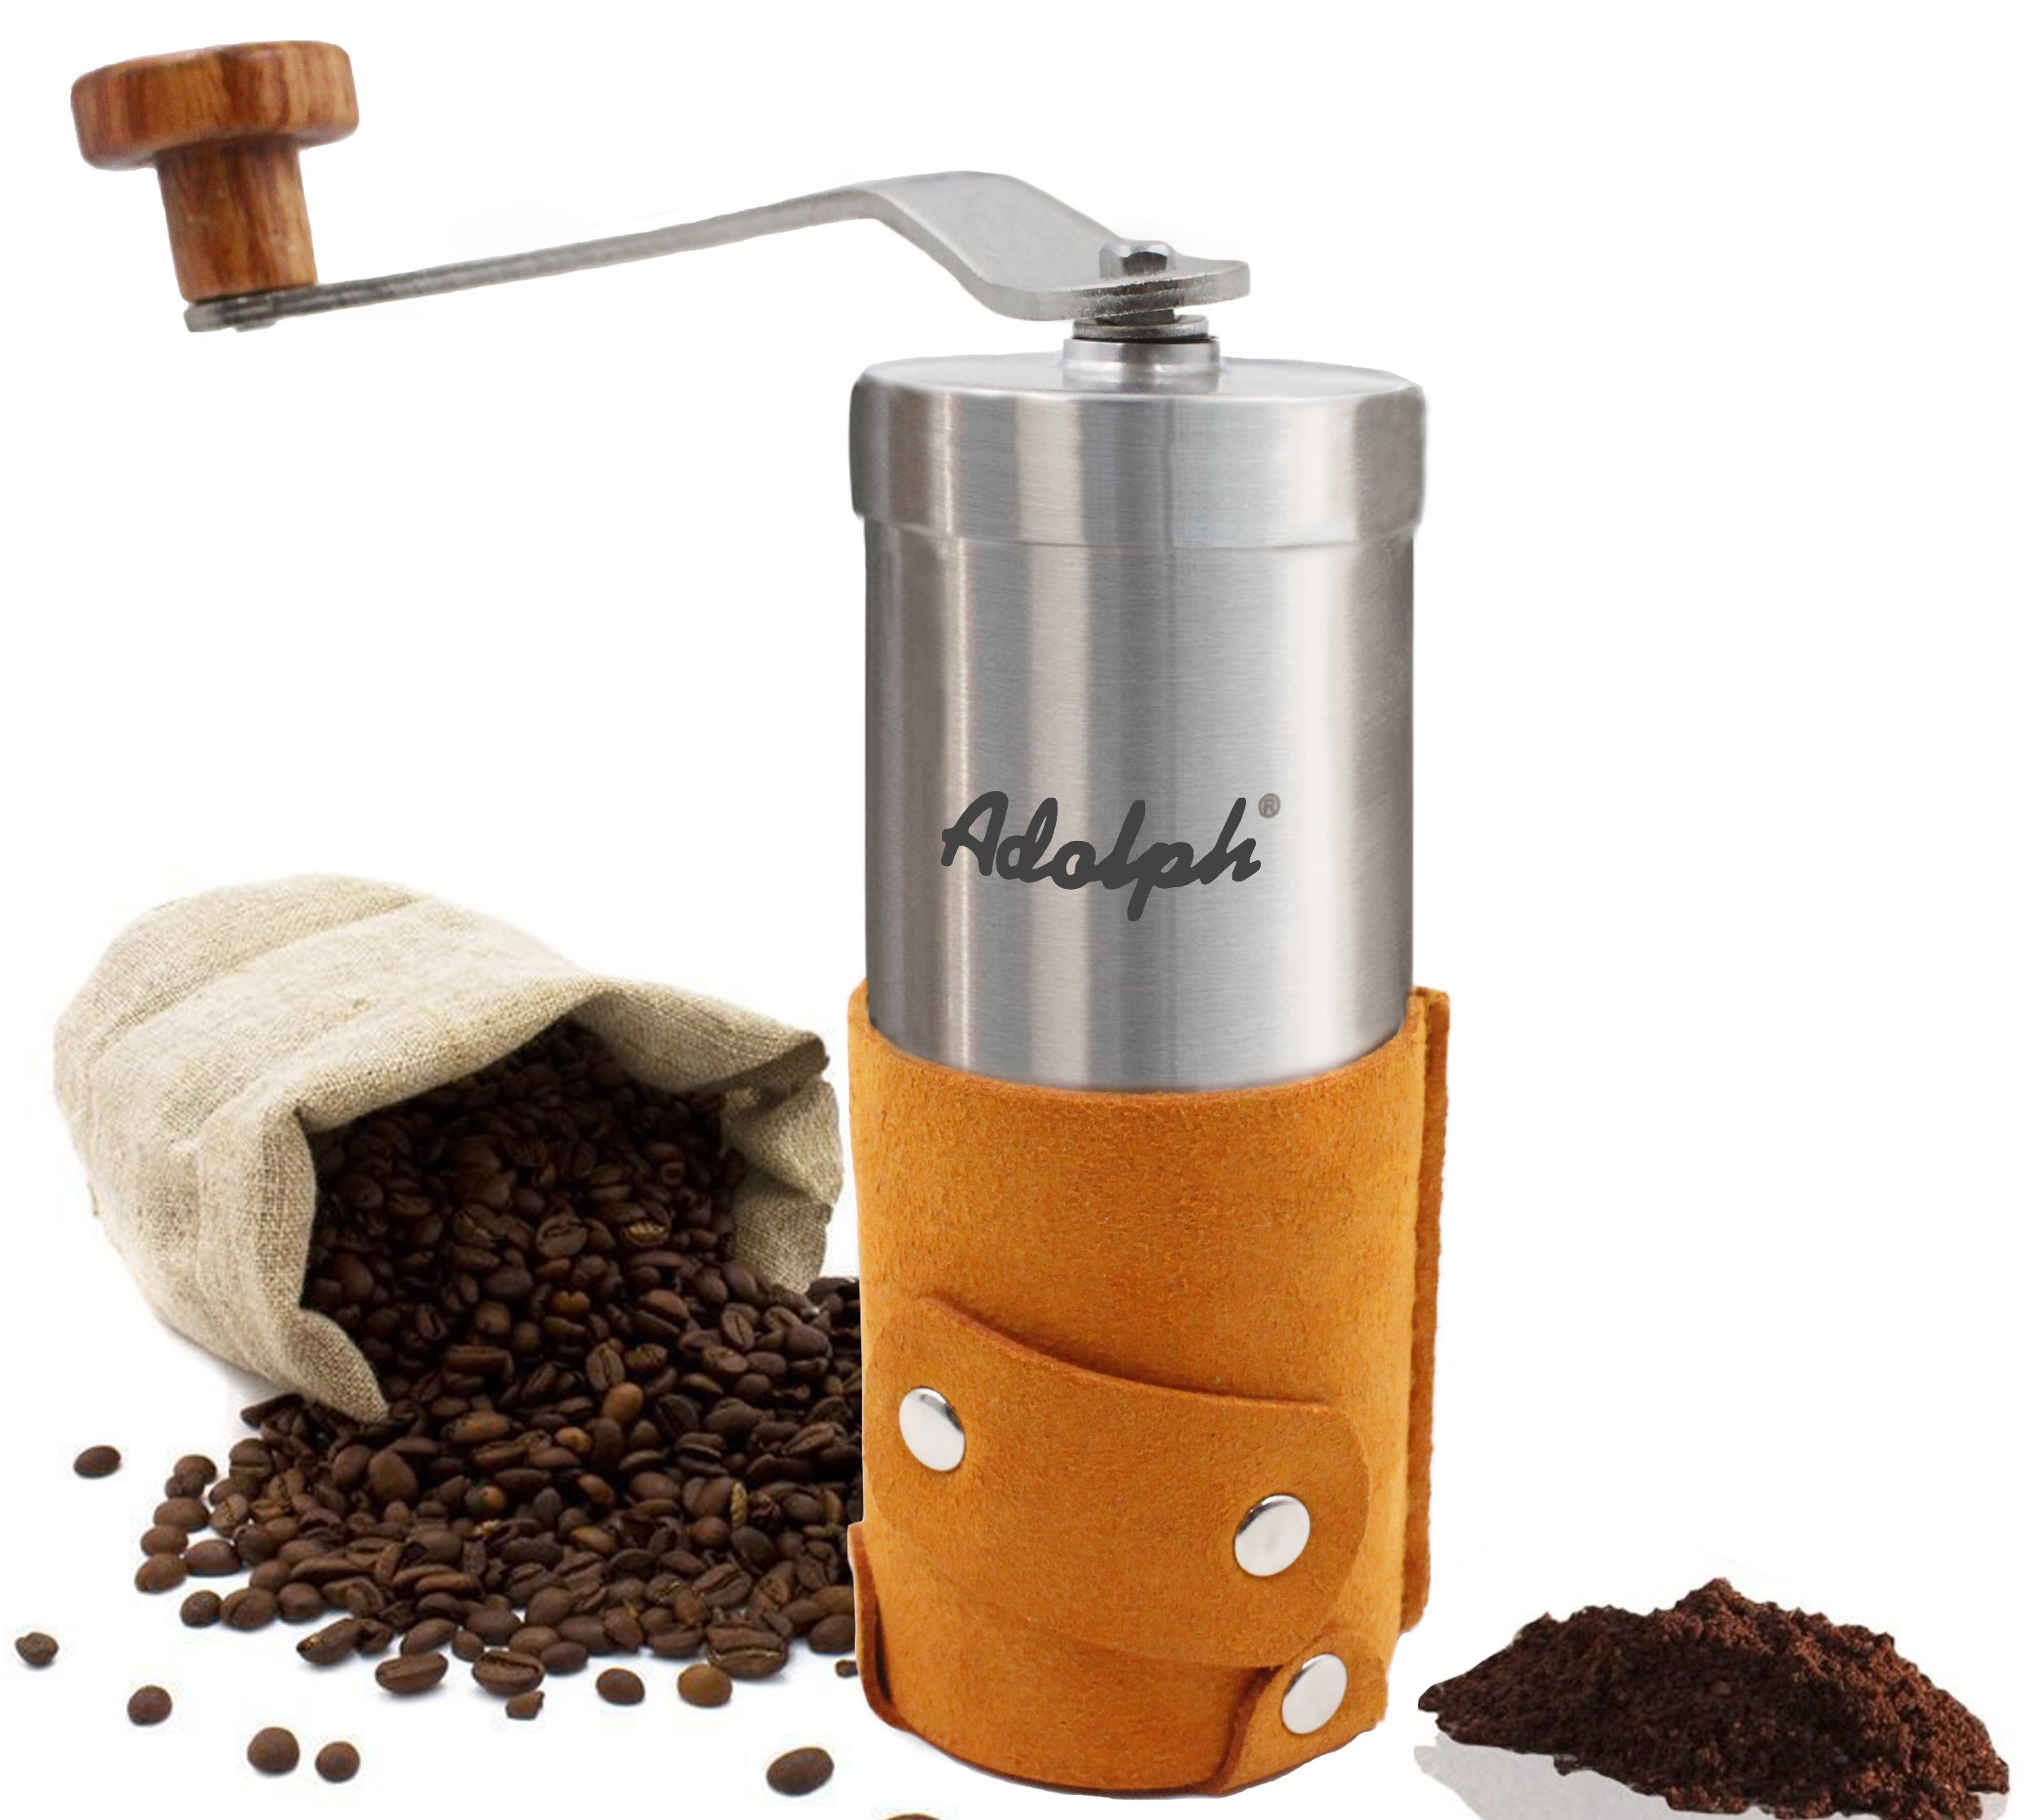 Adolph Portable Manual Brushed Stainless-Steel Coffee Grinder with Coarseness Adjustable Ceramic Conical Burr, Hand Crank and Microfiber Leather Wrapping by ADOLPH